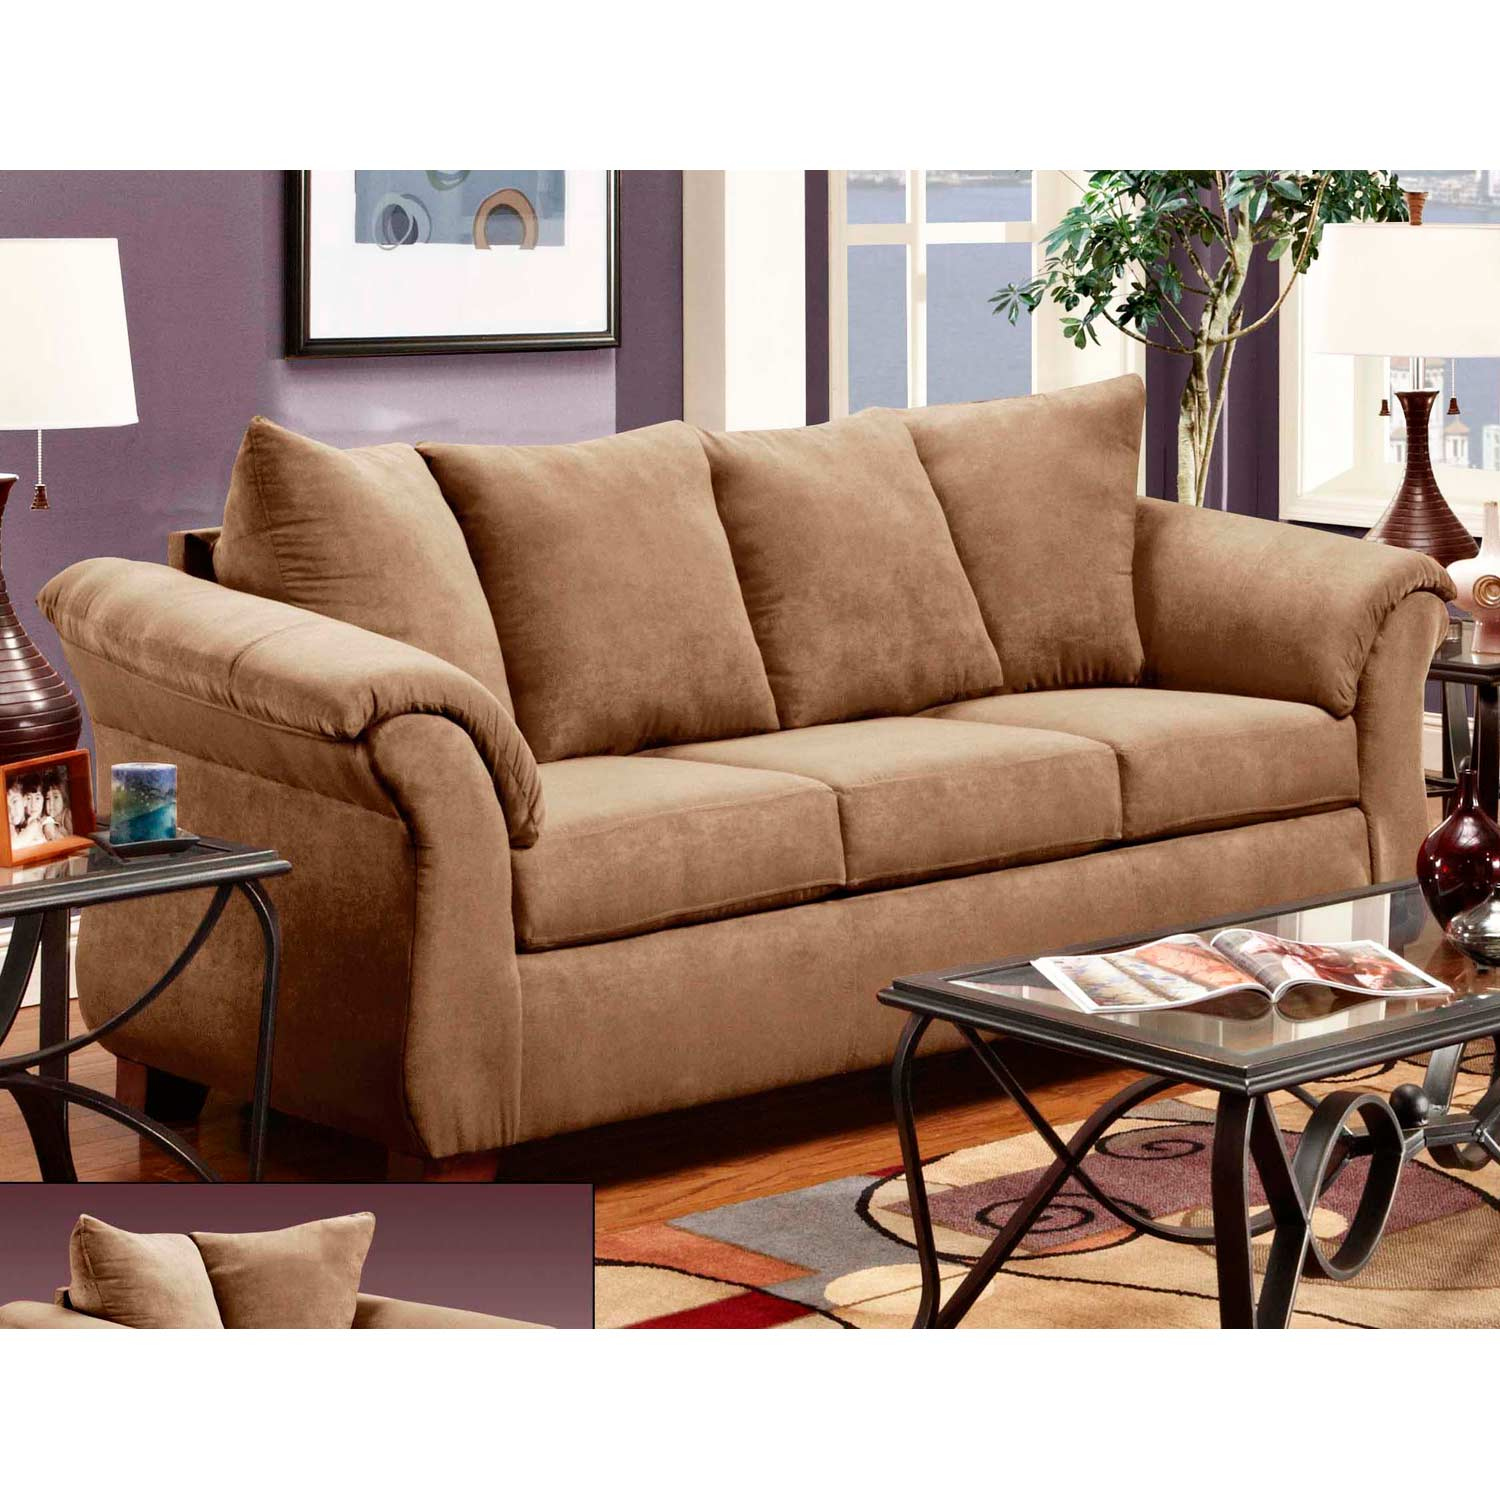 Kiersten Flared Arm Fabric Sofa - Victory Lane Taupe